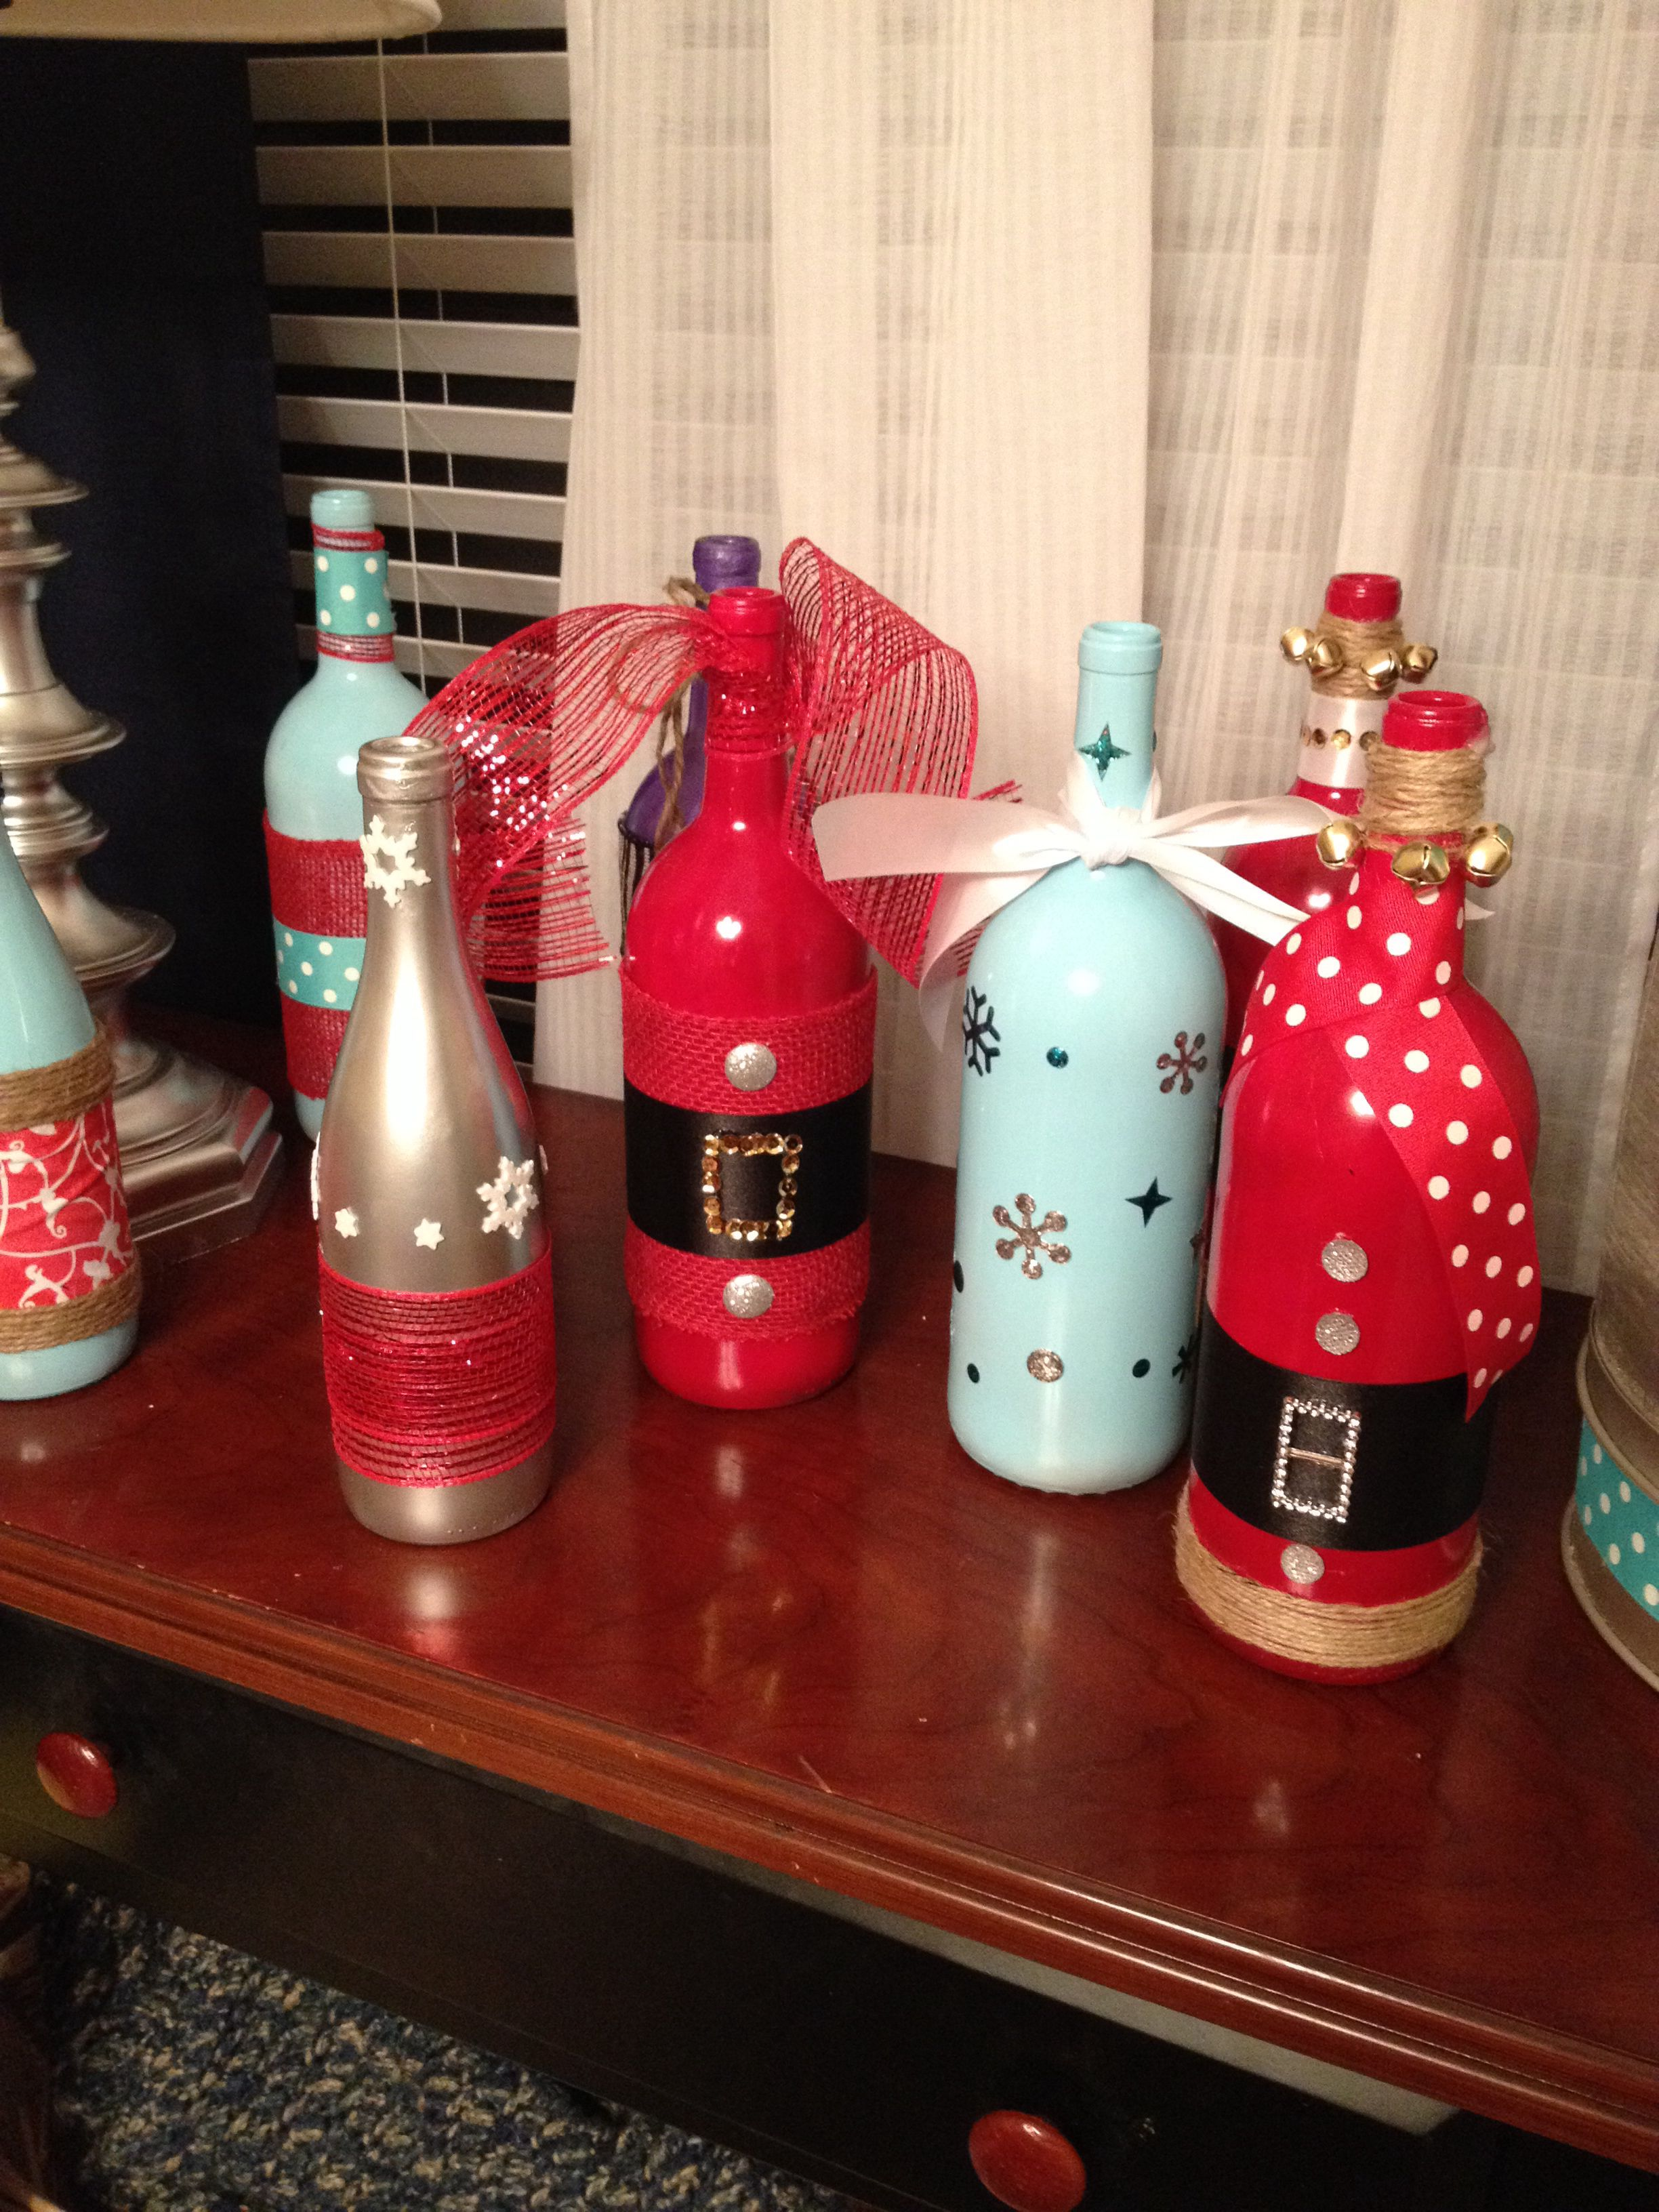 Botellas De Vidrio Decoradas Christmas Wine Bottles Navidad Christmas Wine Bottles